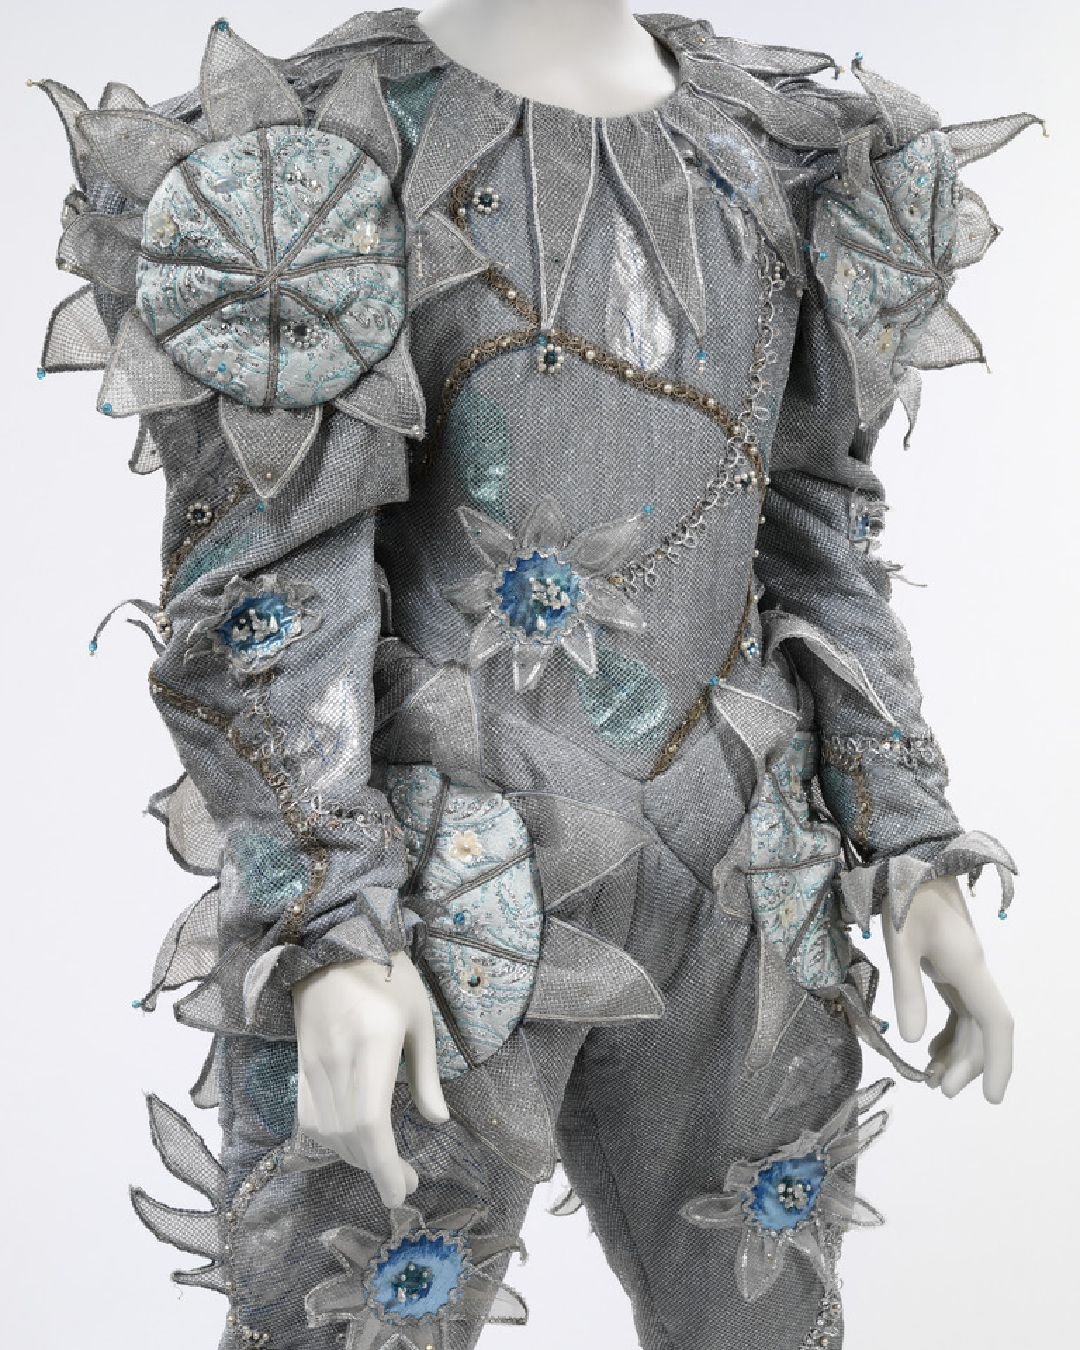 Kicking off Monday with the ultimate Headliner, the legendary David Bowie.    Have you seen any of Bowie's iconic music videos? This costume (designed by Natasha Korniloff) was worn by Bowie in the Ashes to Ashes video, at the time the most expensive music video ever made! https://t.co/pYN85nywrx